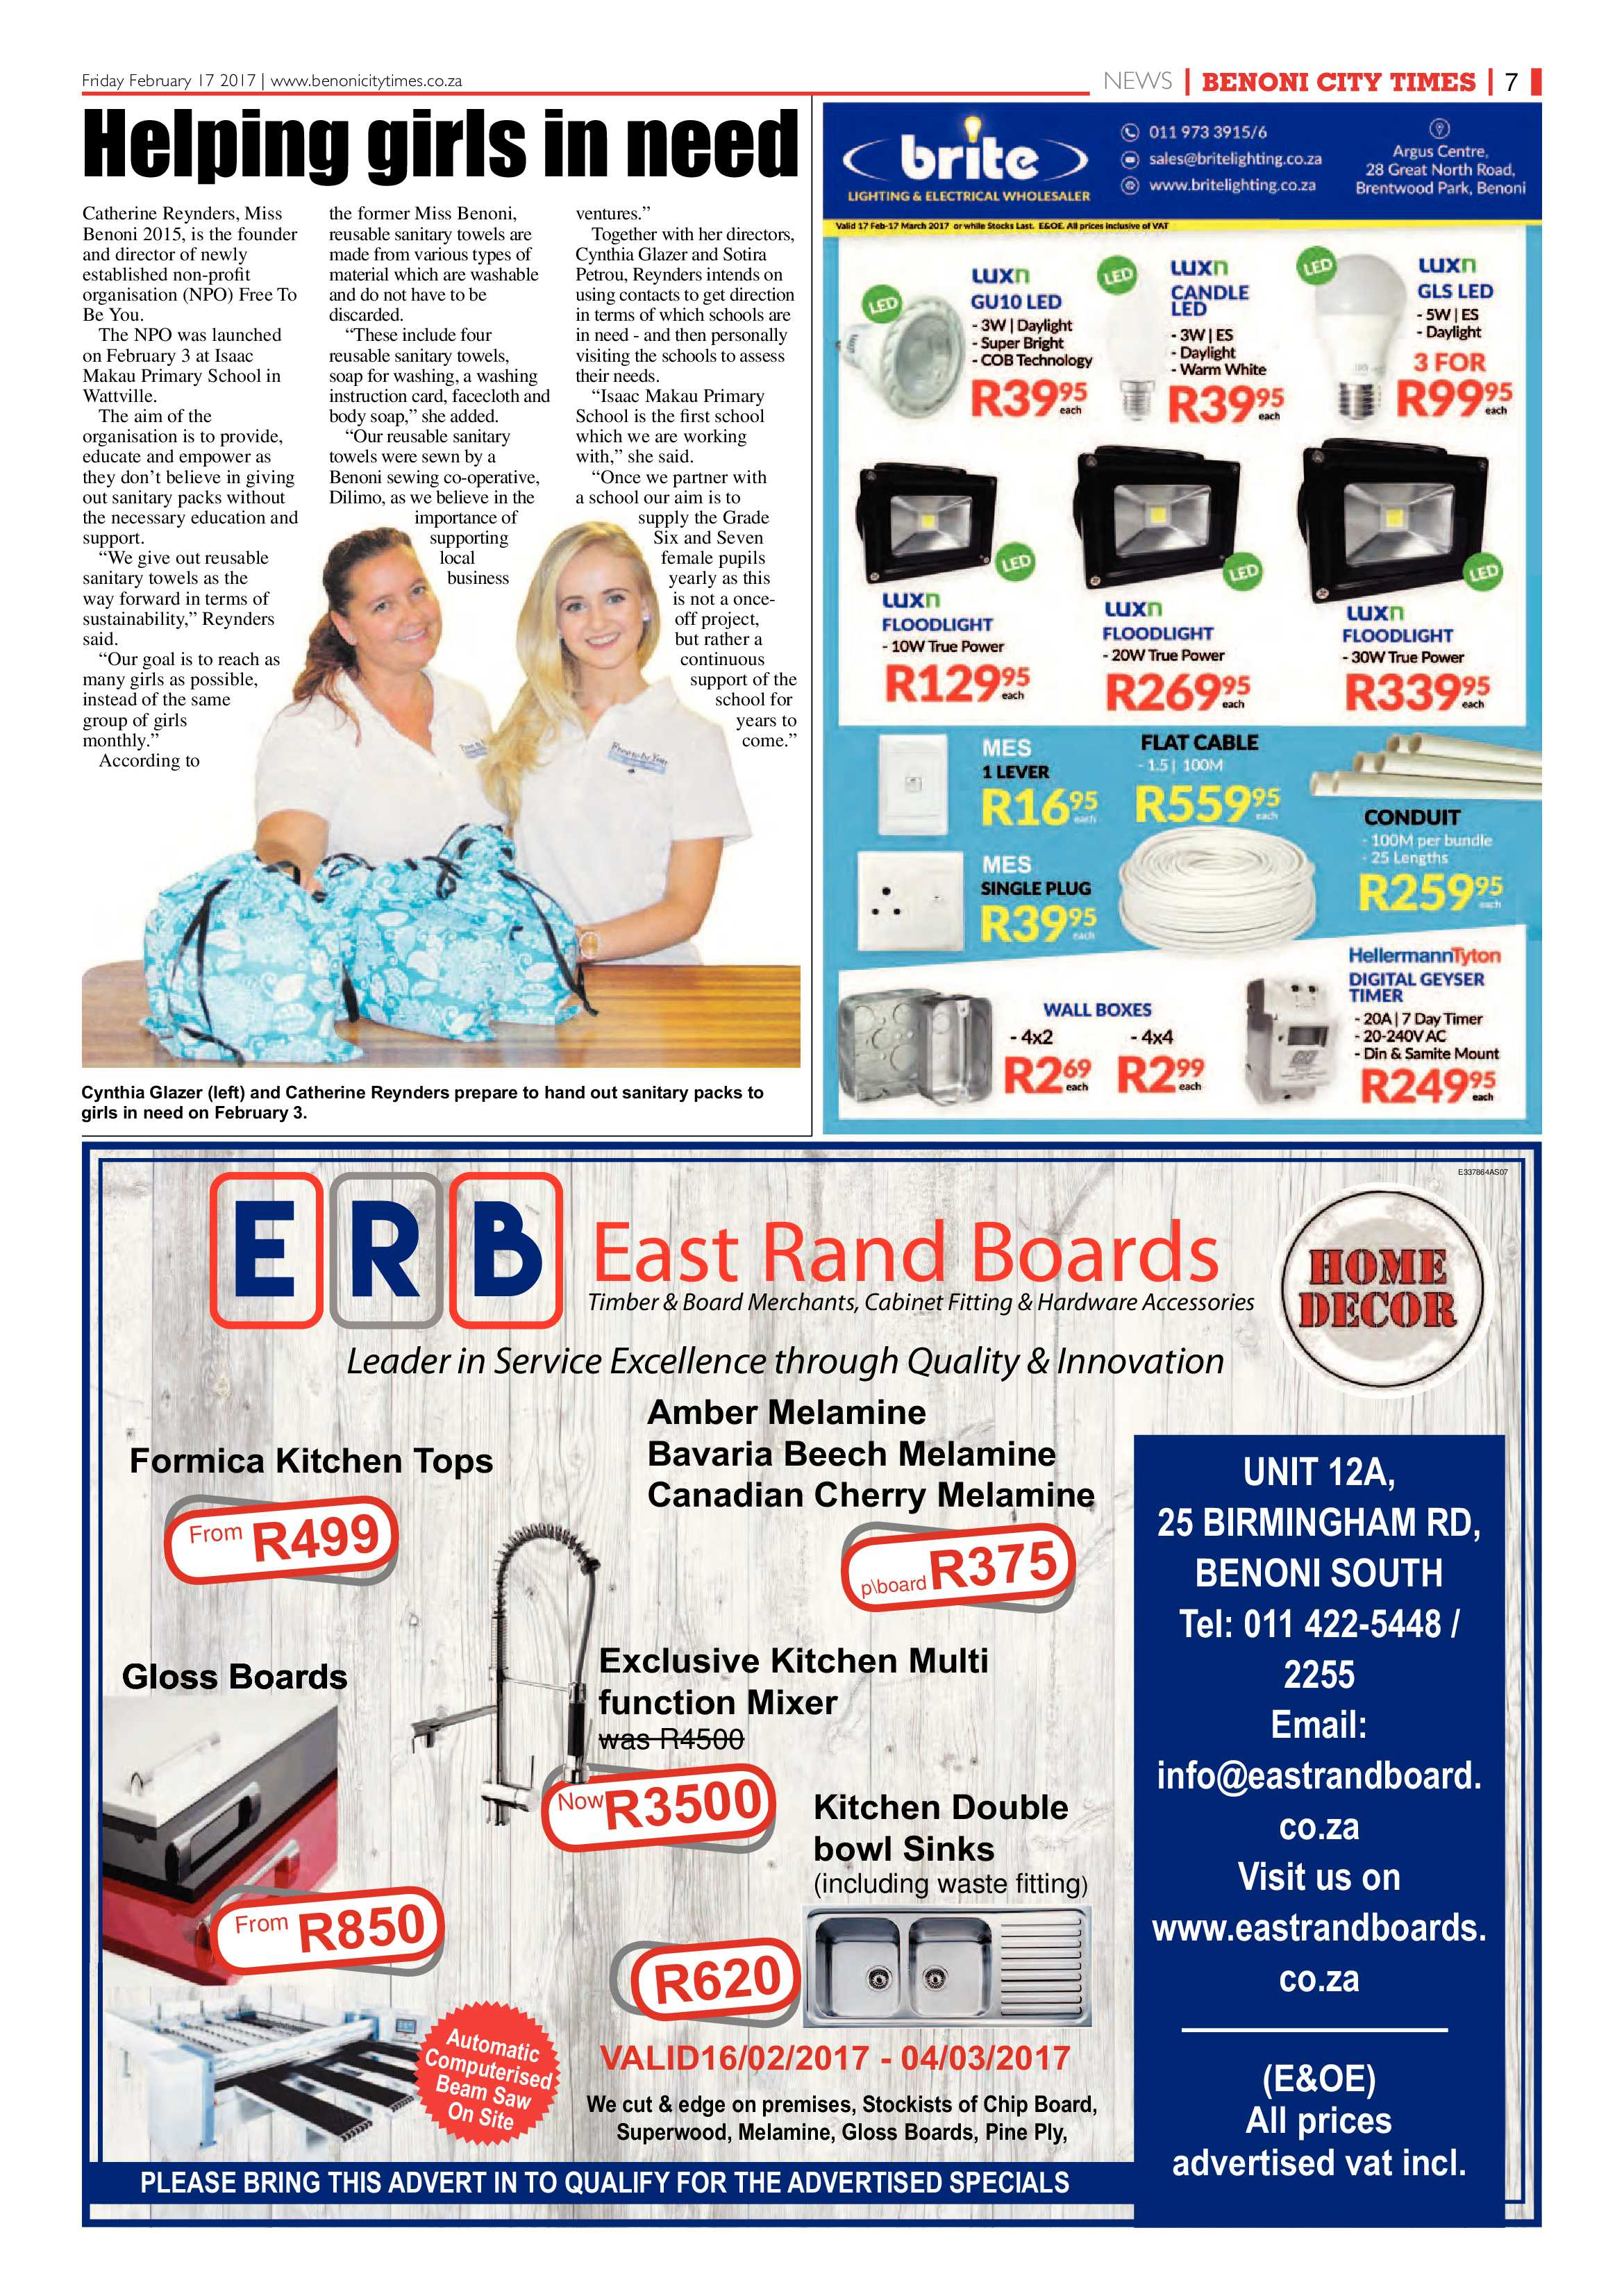 benoni-city-times-16-february-2017-epapers-page-7